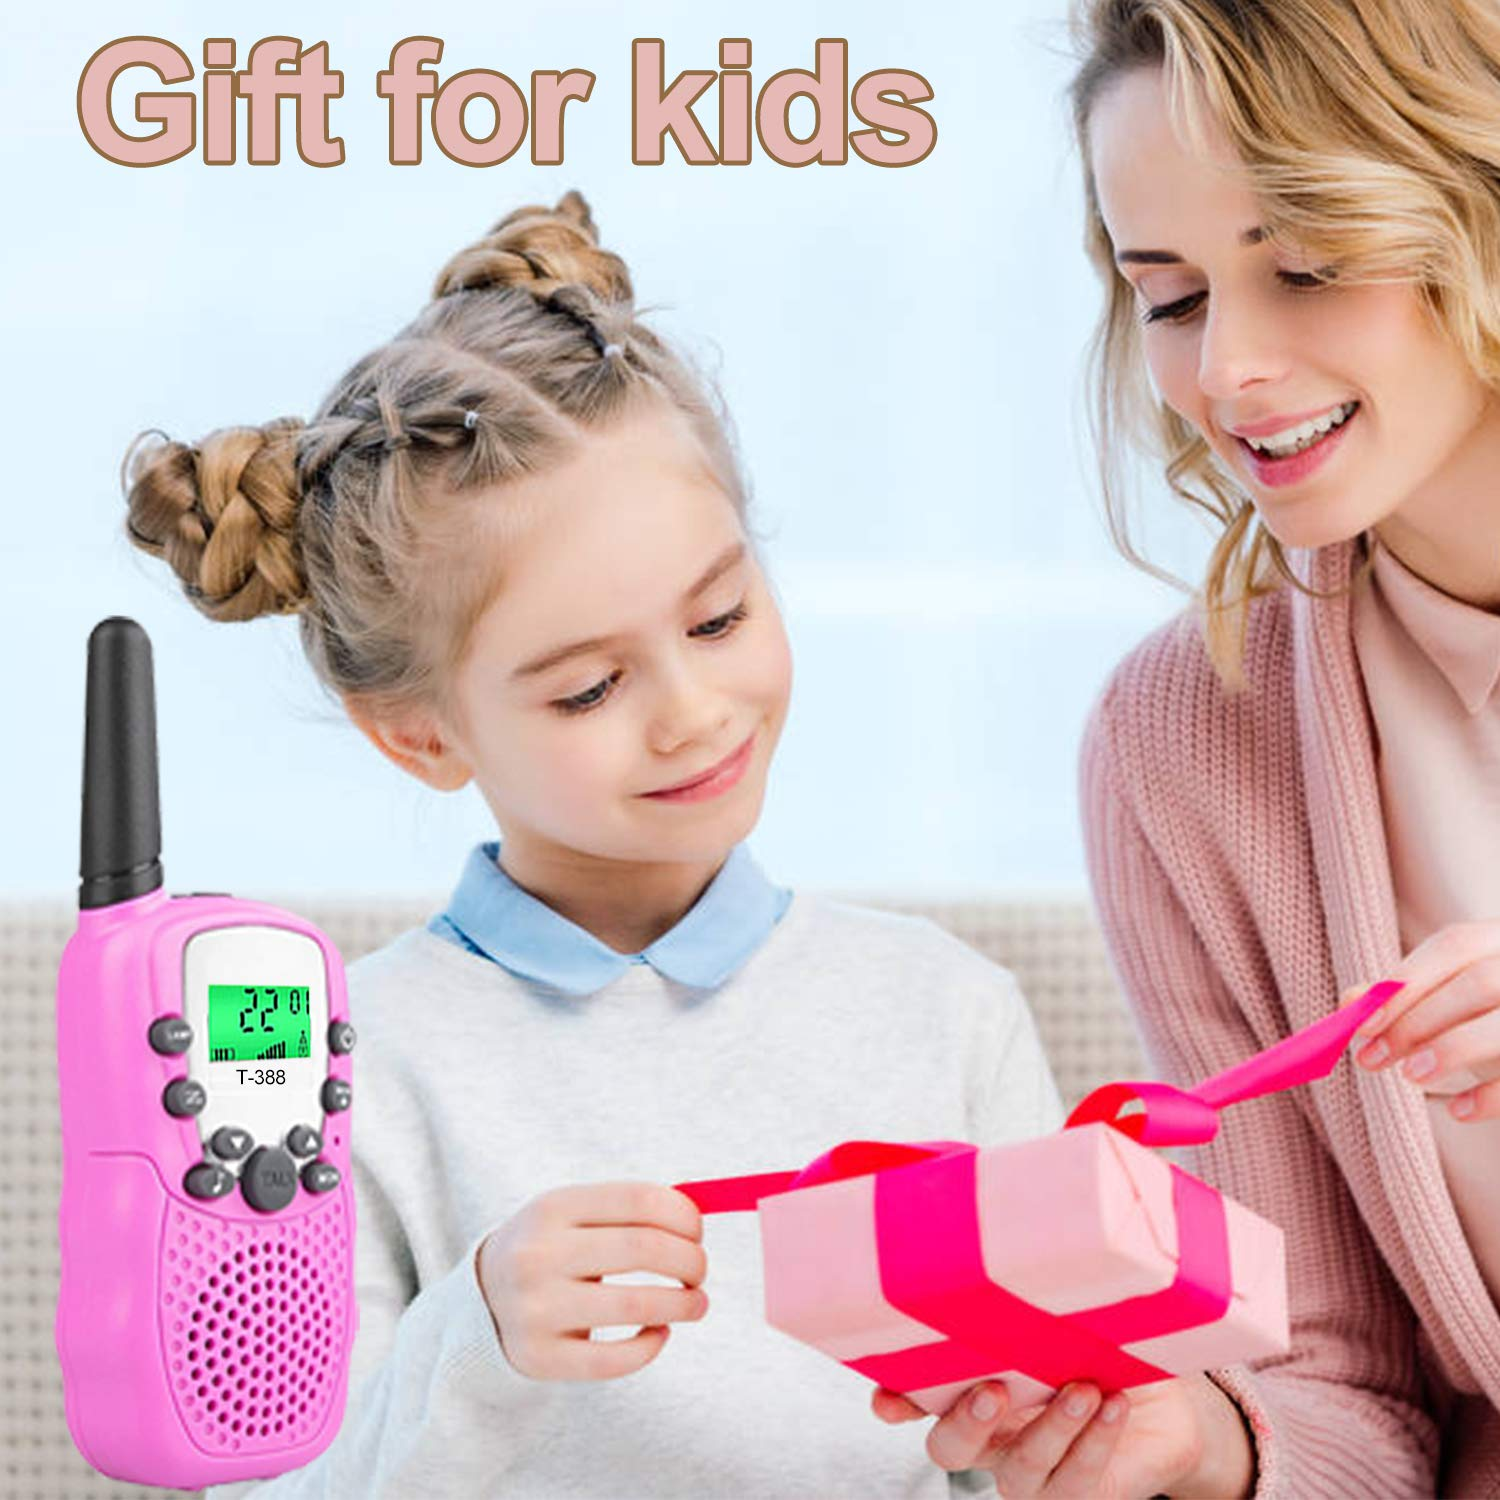 Kids Walkie Talkies Toys for 3-12 Year Old Boys Girls Toddlers, 4 Pack Walkie Talkies with 4 Earphones, 3 Mile Range 22 Channel Flashlight Two-Way Radio, Accessory for Outdoor Adventure Camping Game by iGeeKid (Image #7)